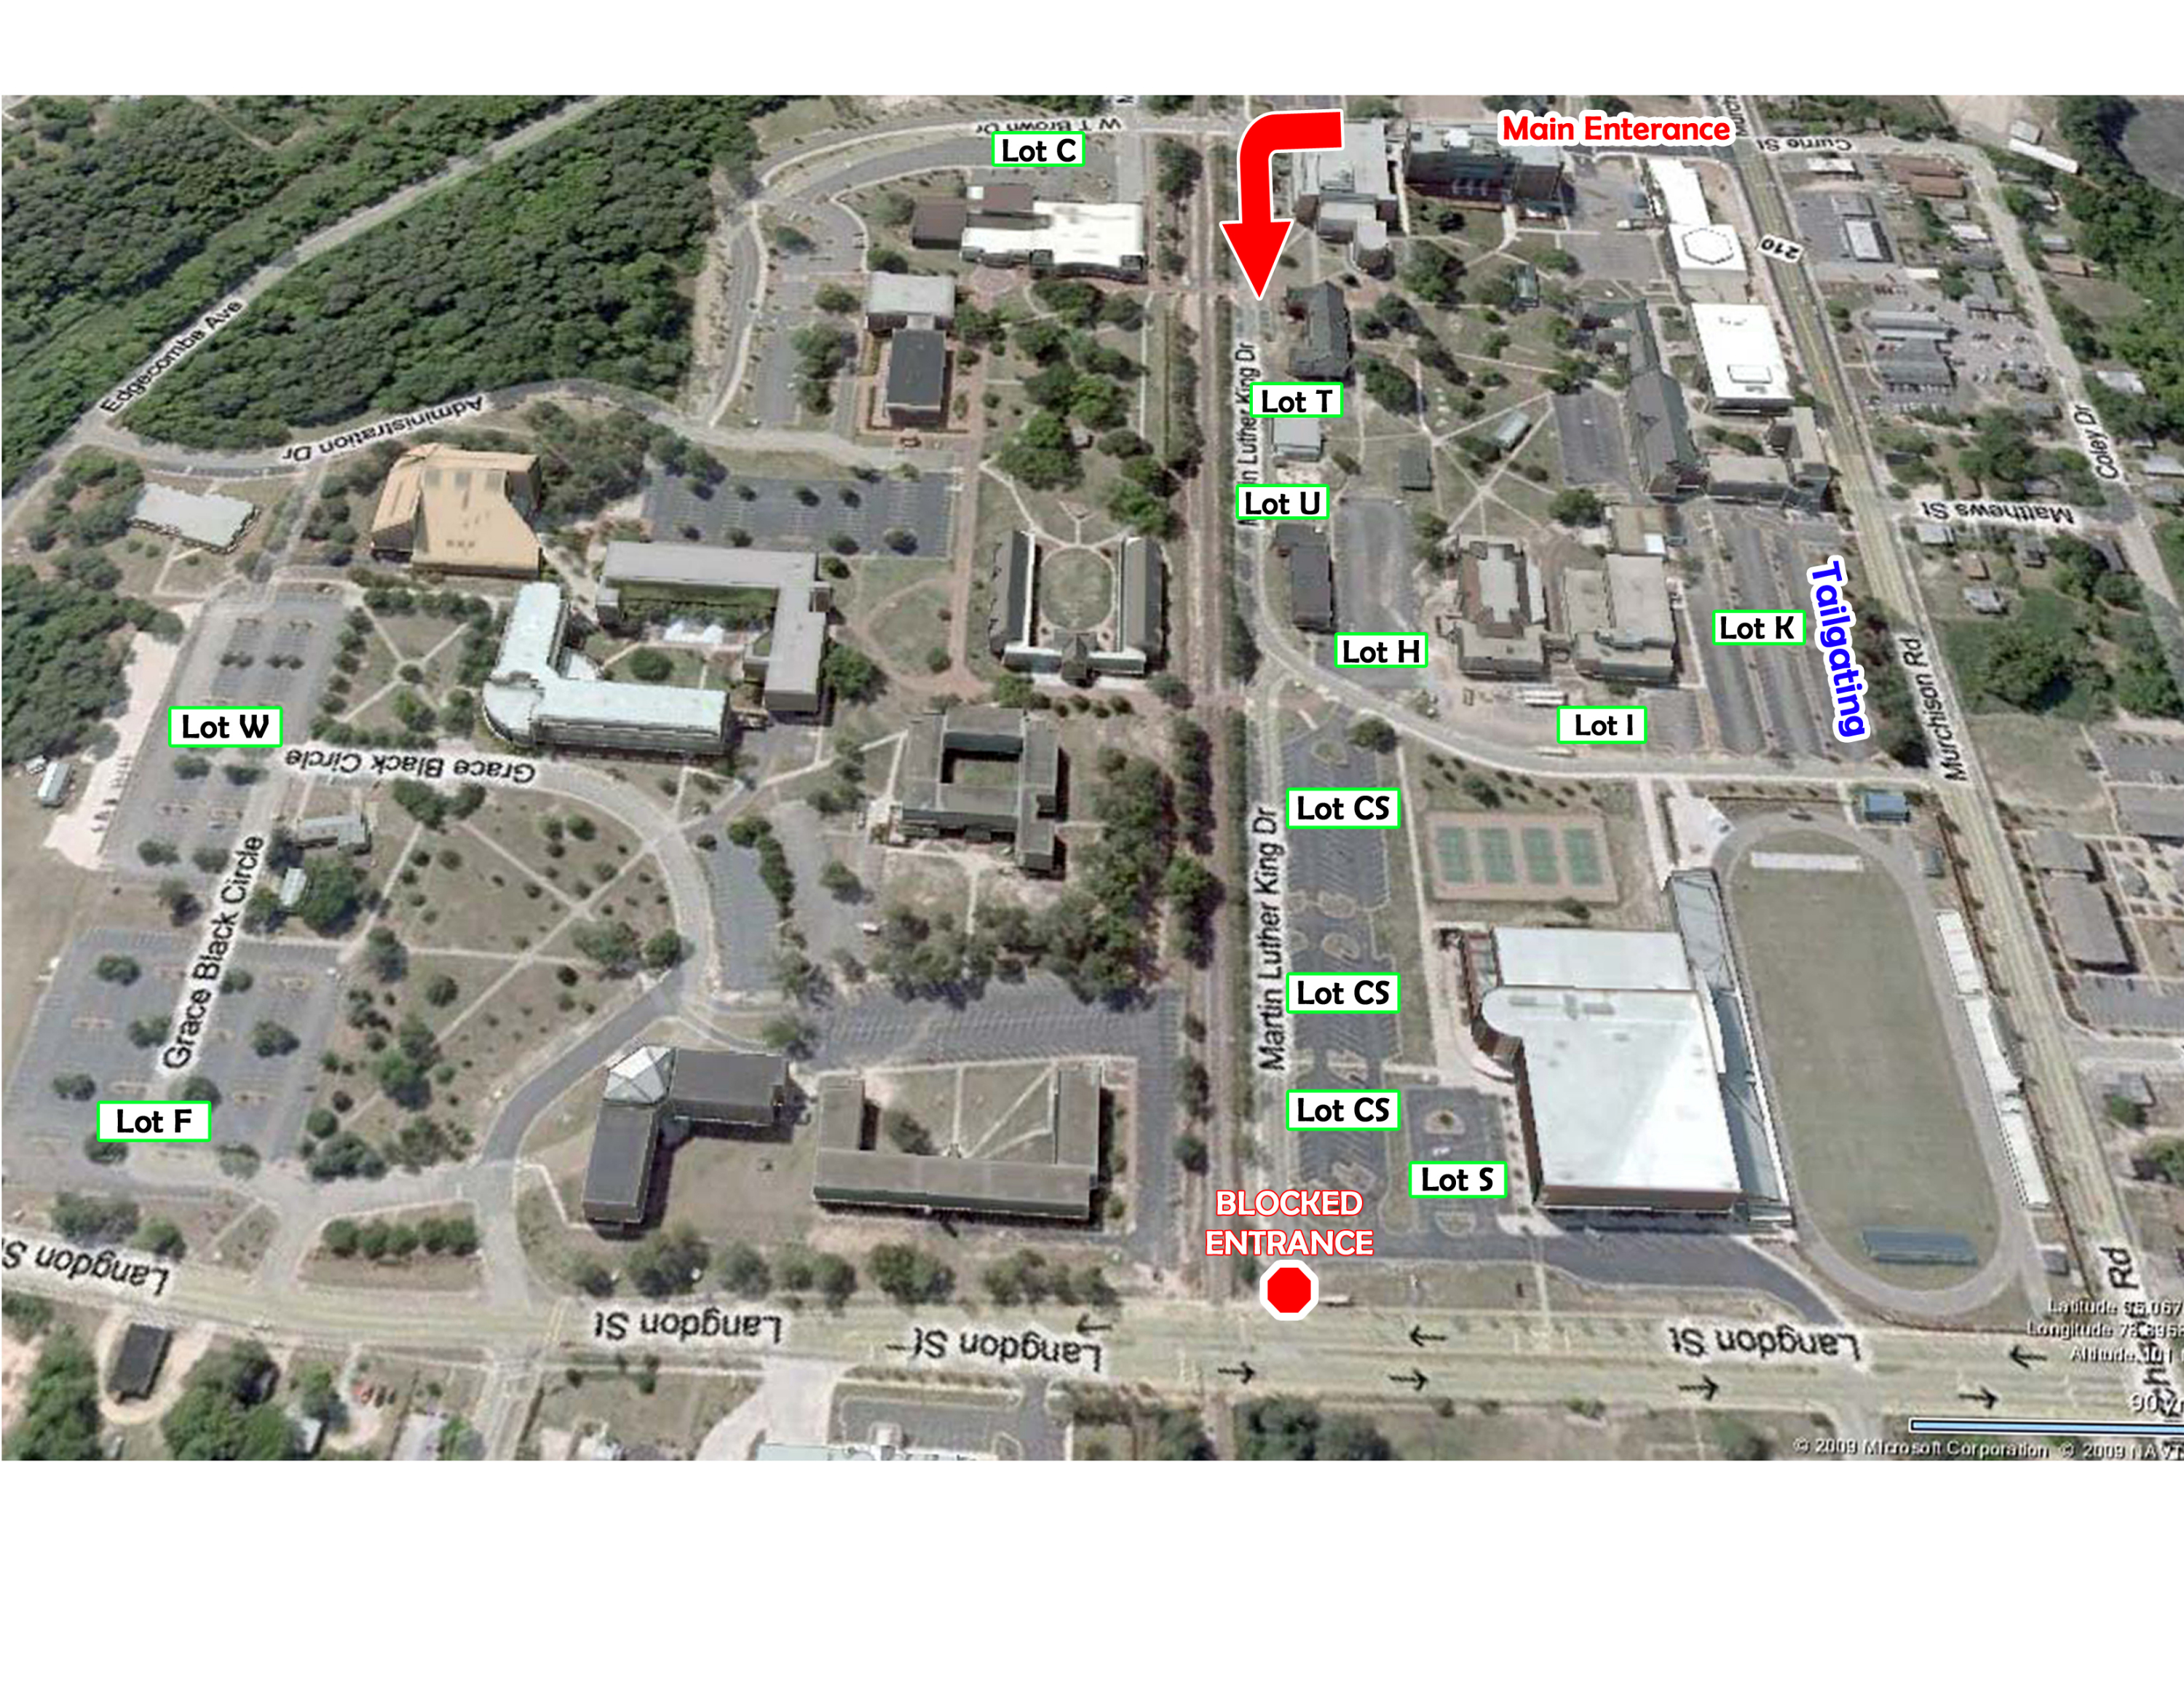 fayetteville state university campus map Directions Fayetteville State University Athletics fayetteville state university campus map